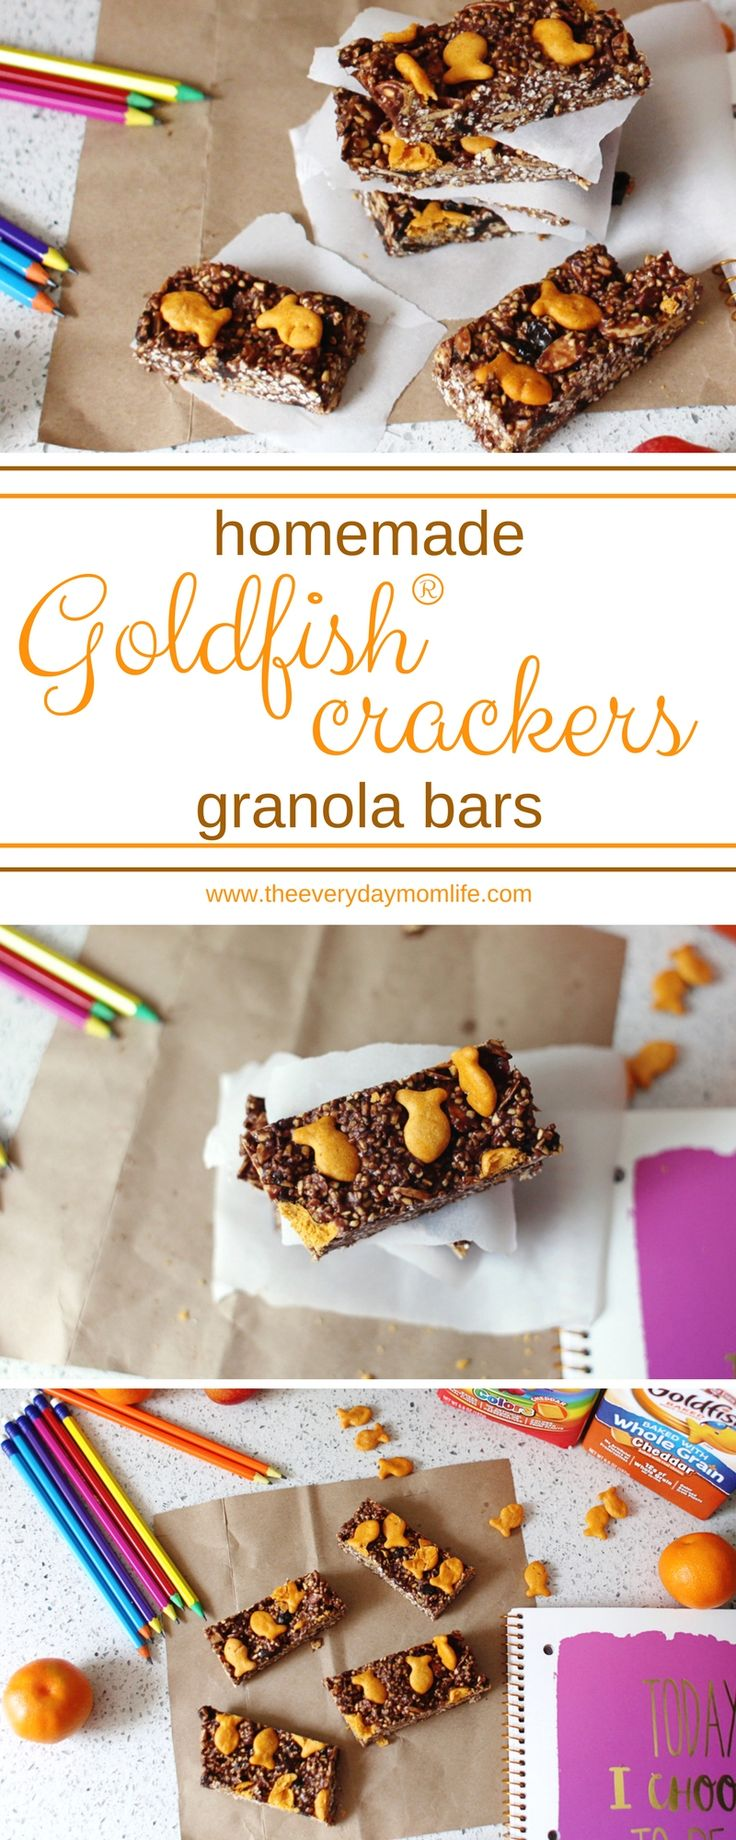 Serve up smiles at school with these homemade granola bars for kids. And grab FREE lunchbox printables to let your kids know you're thinking of them. #granolabars #ad #GoldfishLunchSmiles #lunchboxprintables